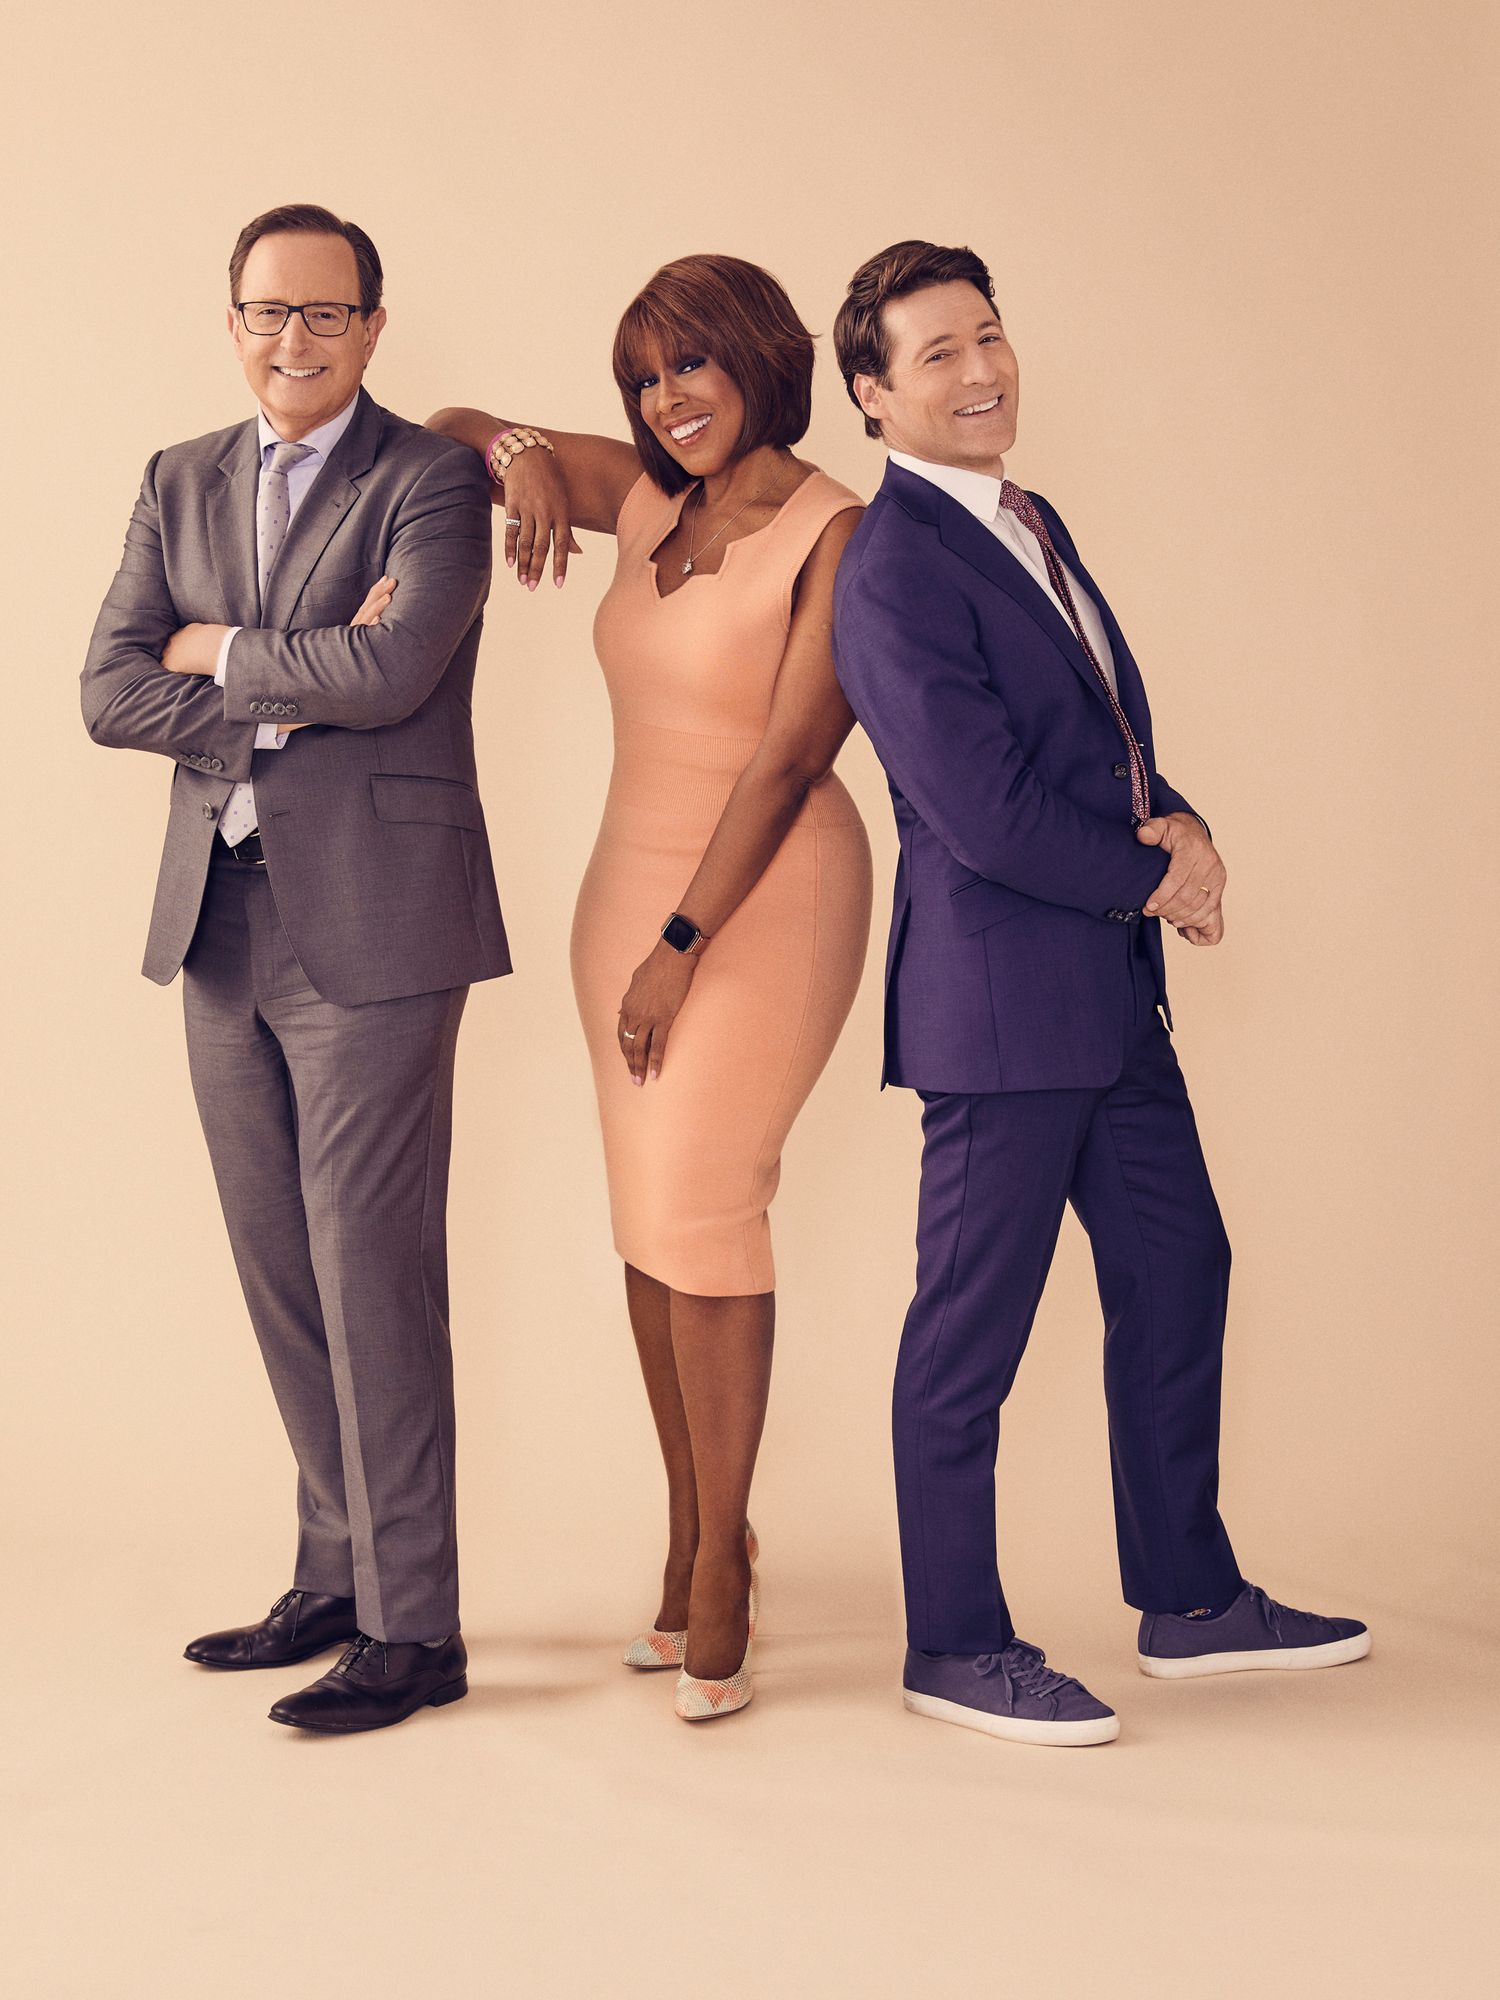 Gayle King, Anthony Mason, and Tony Dokoupil of CBS This Morning